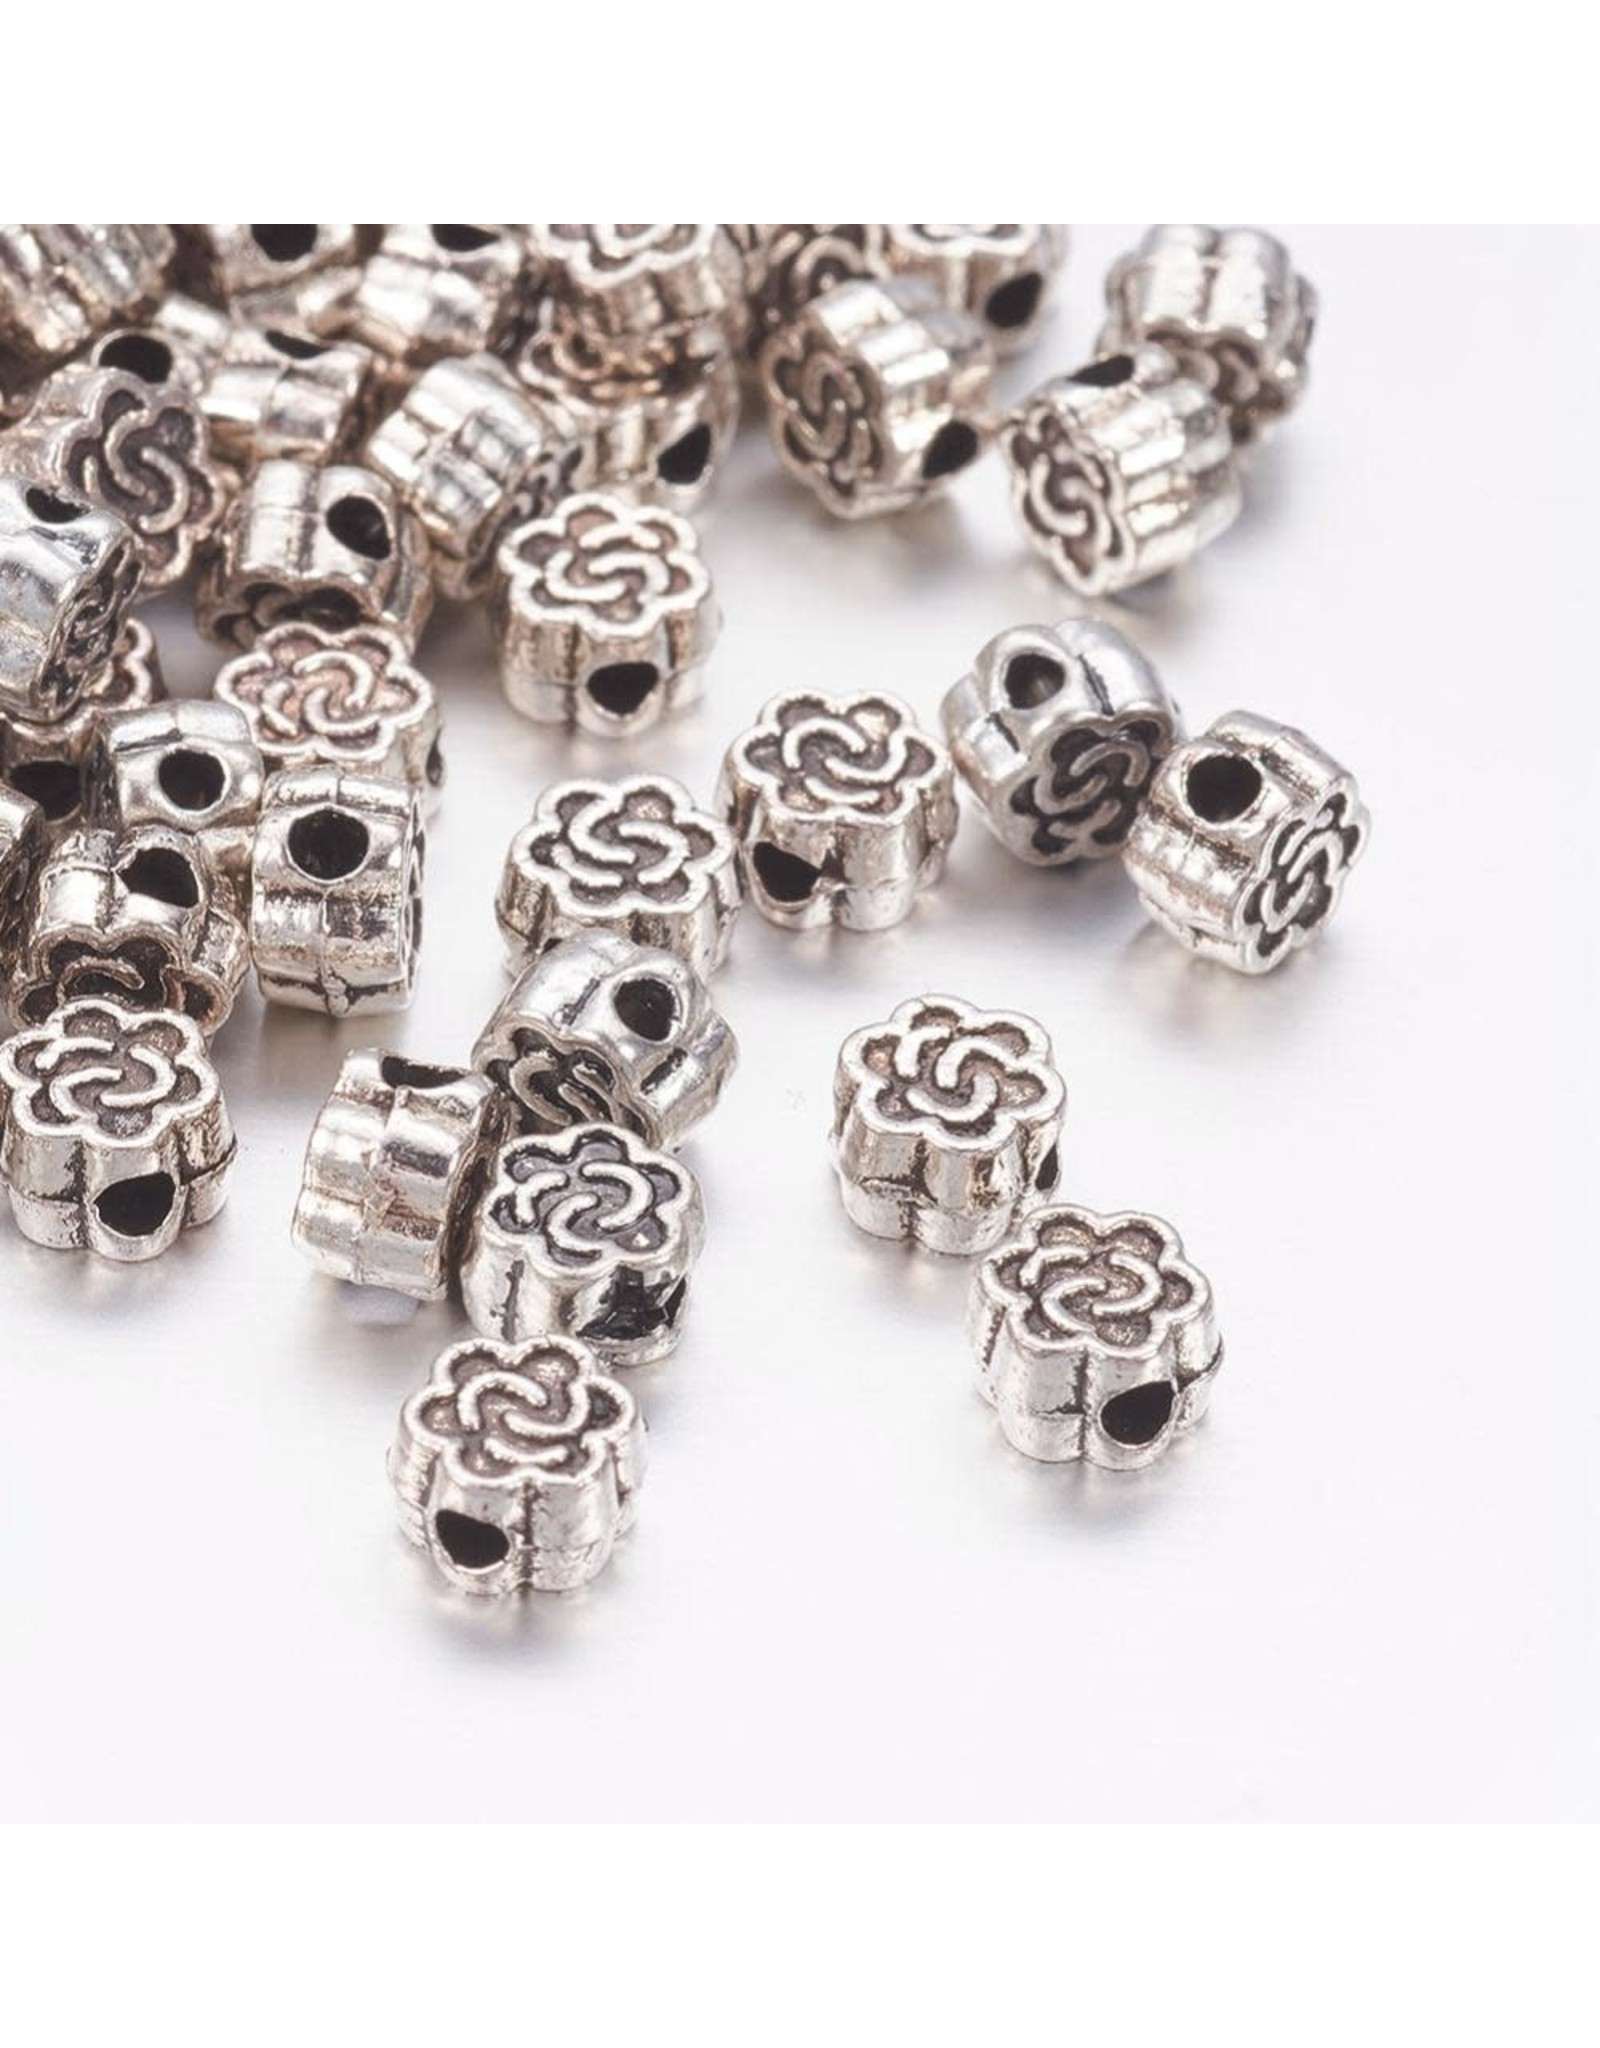 Celtic Knot Bead Antique Silver 4.5mm  x25